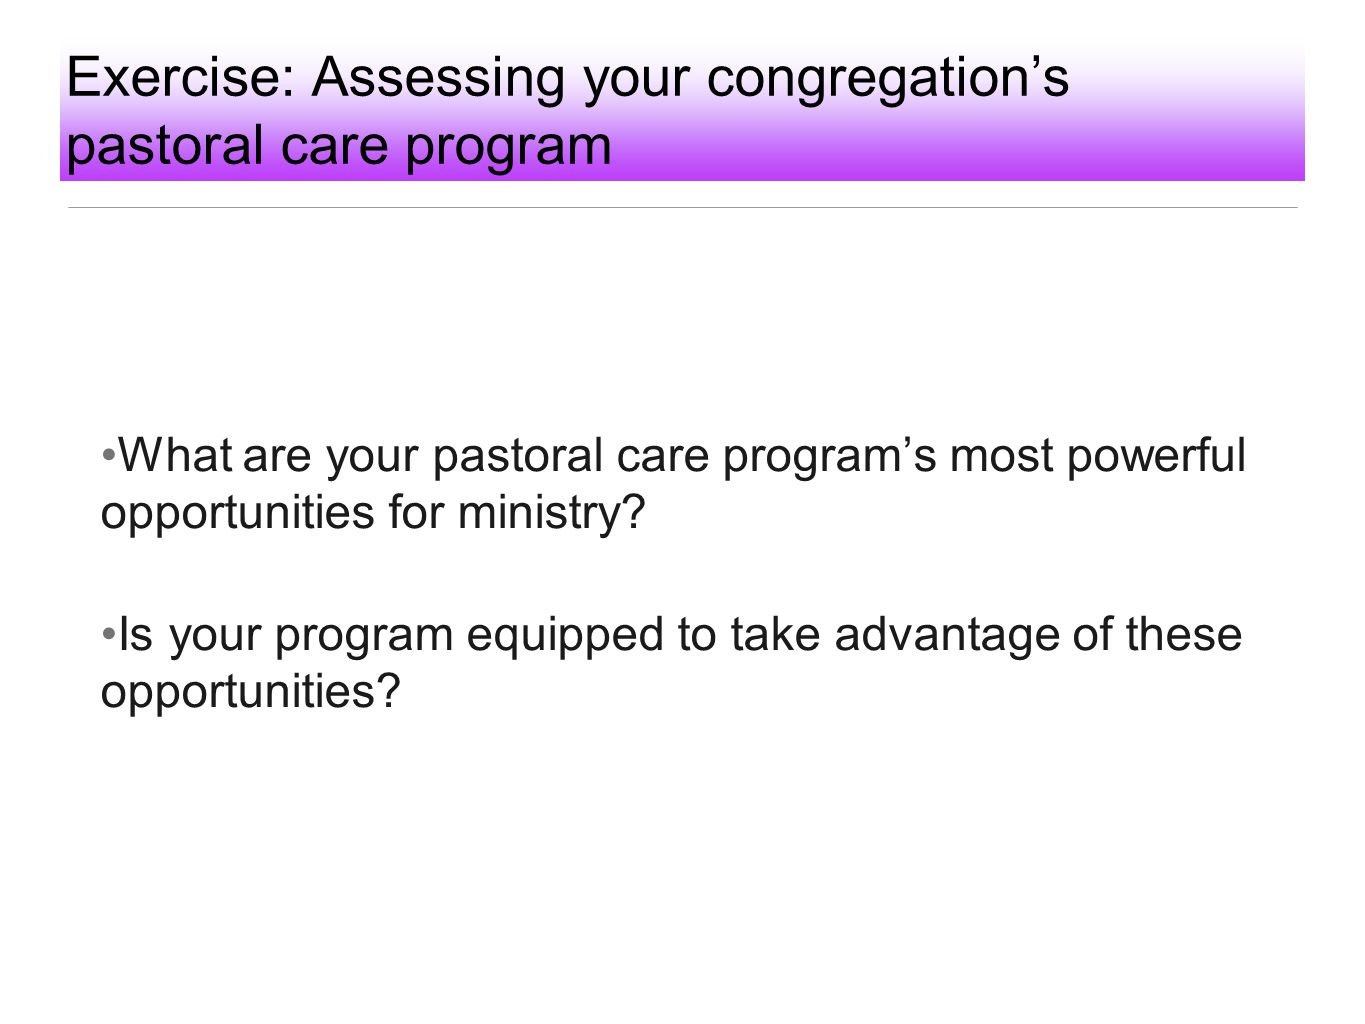 Exercise: Assessing your congregation's pastoral care program What are your pastoral care program's most powerful opportunities for ministry? Is your